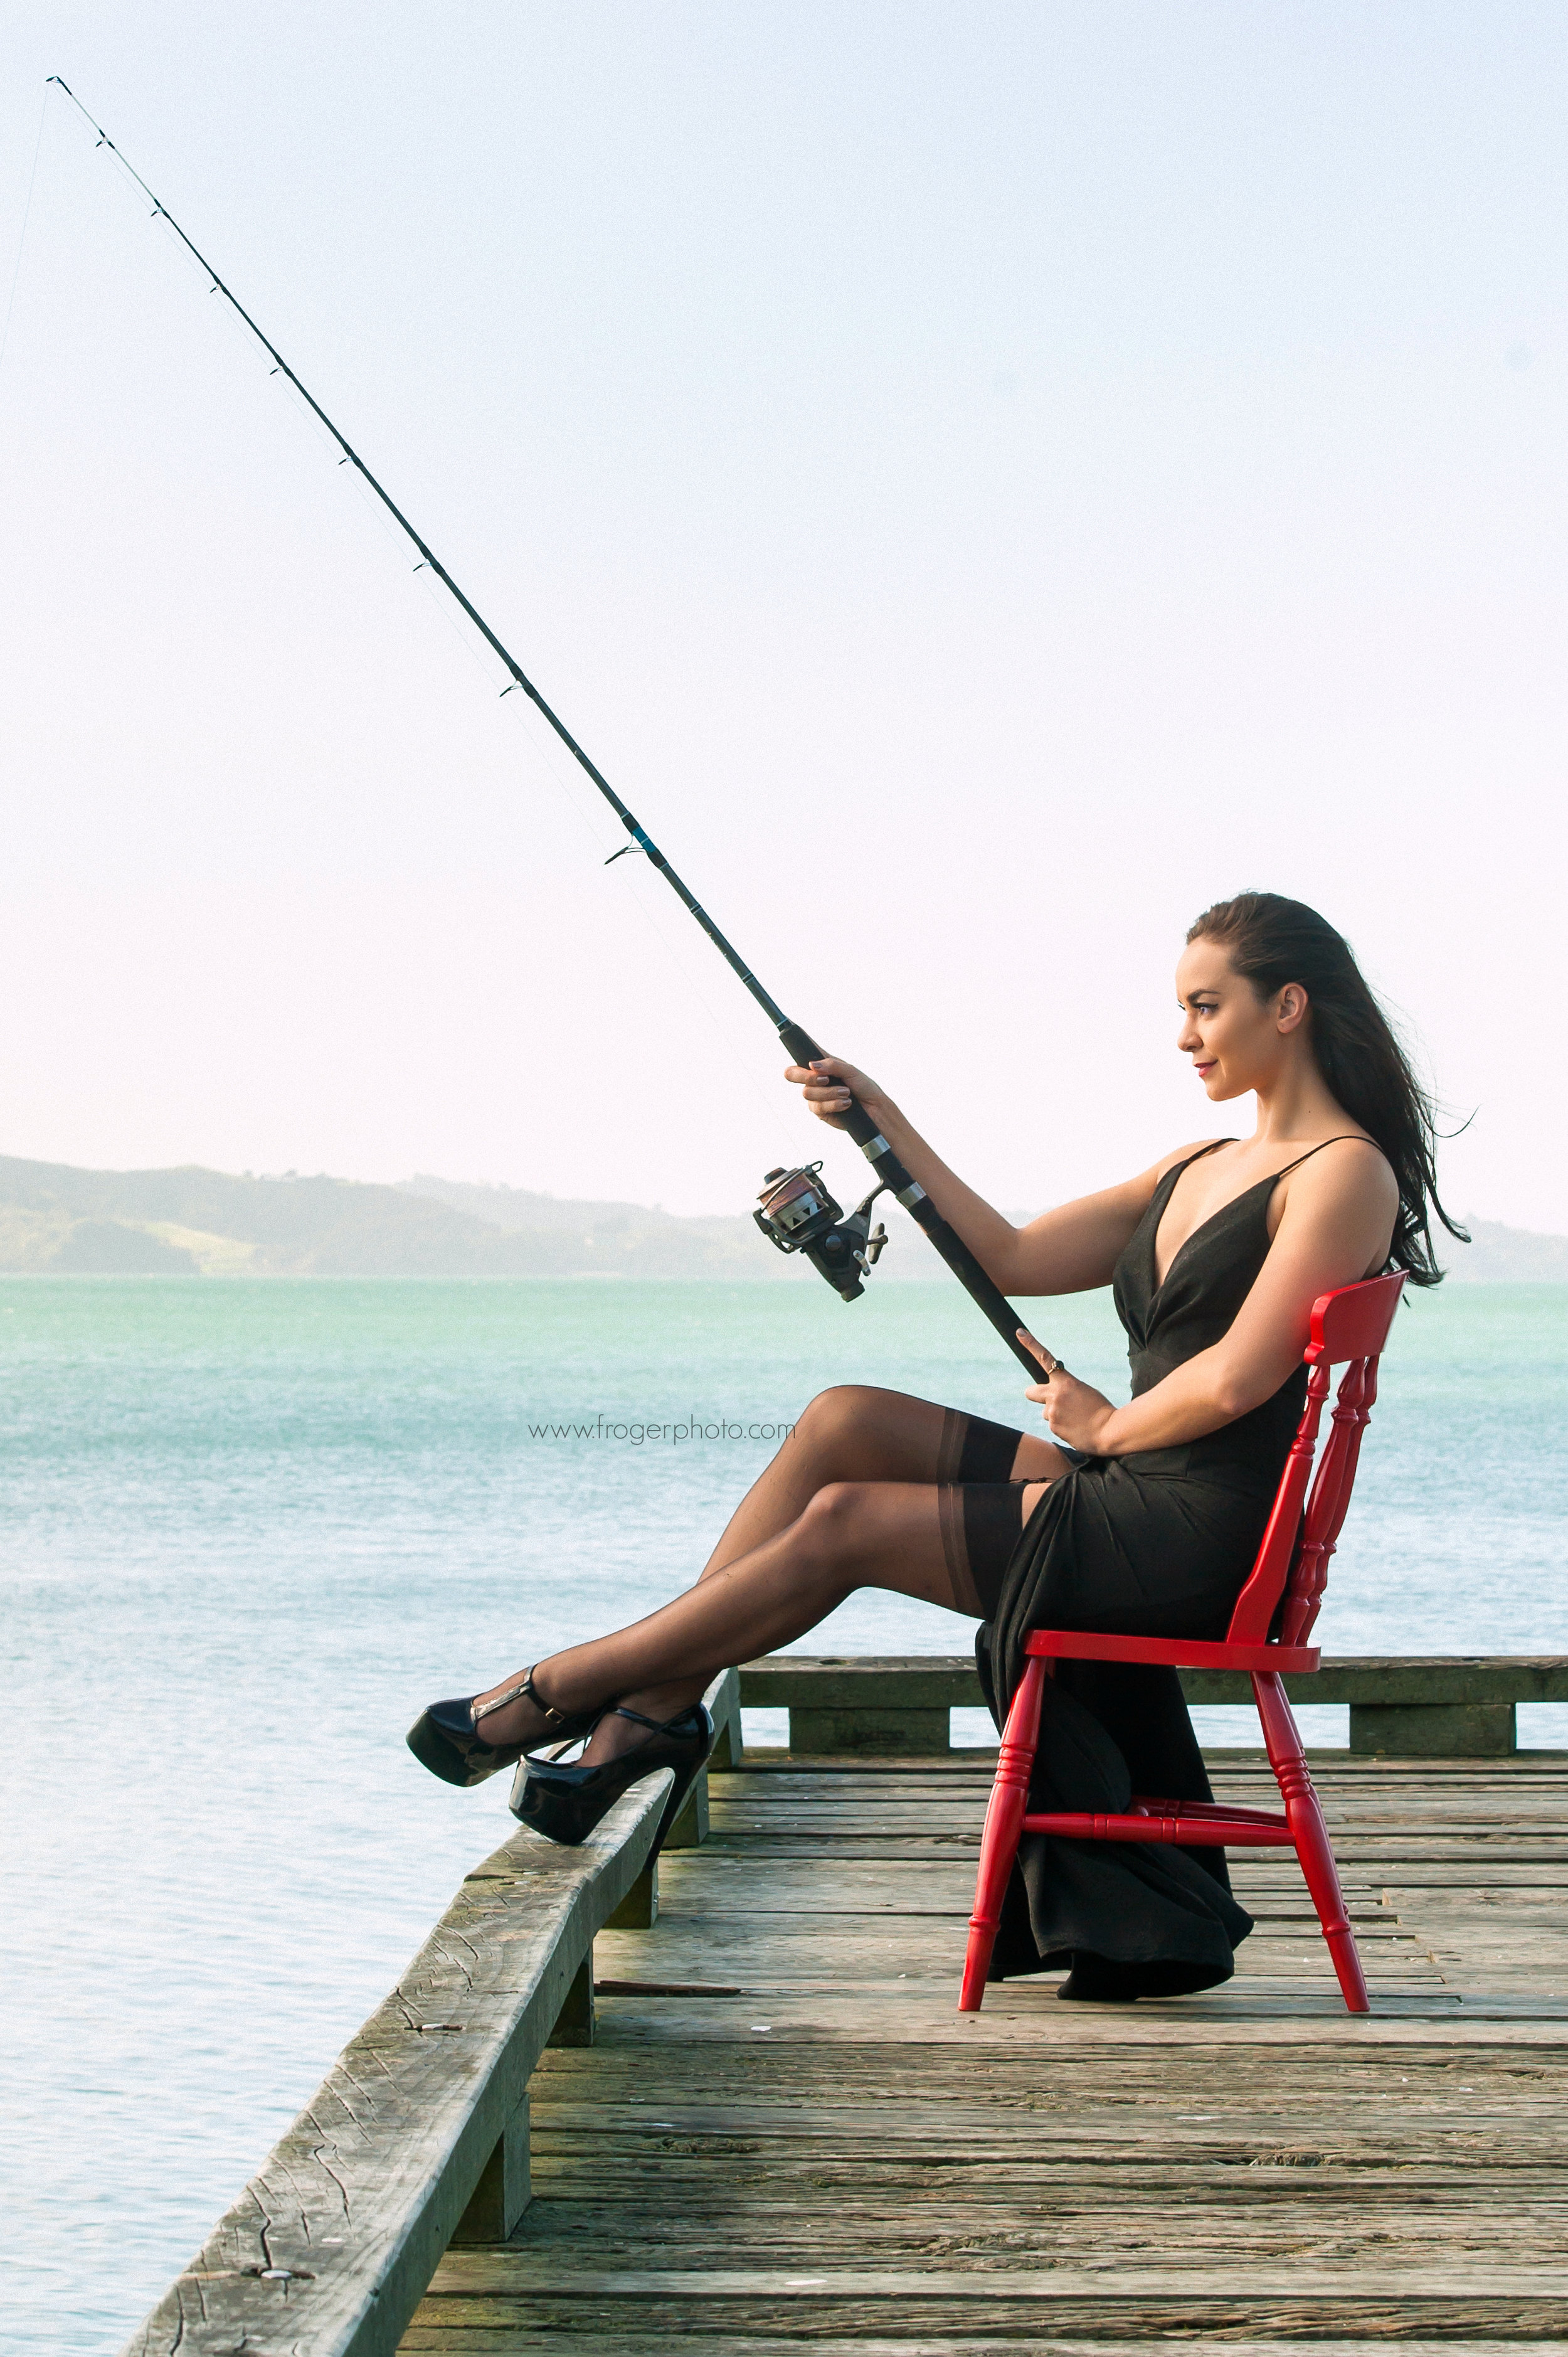 Michelle - #Gone Fishin - Updated May 13th